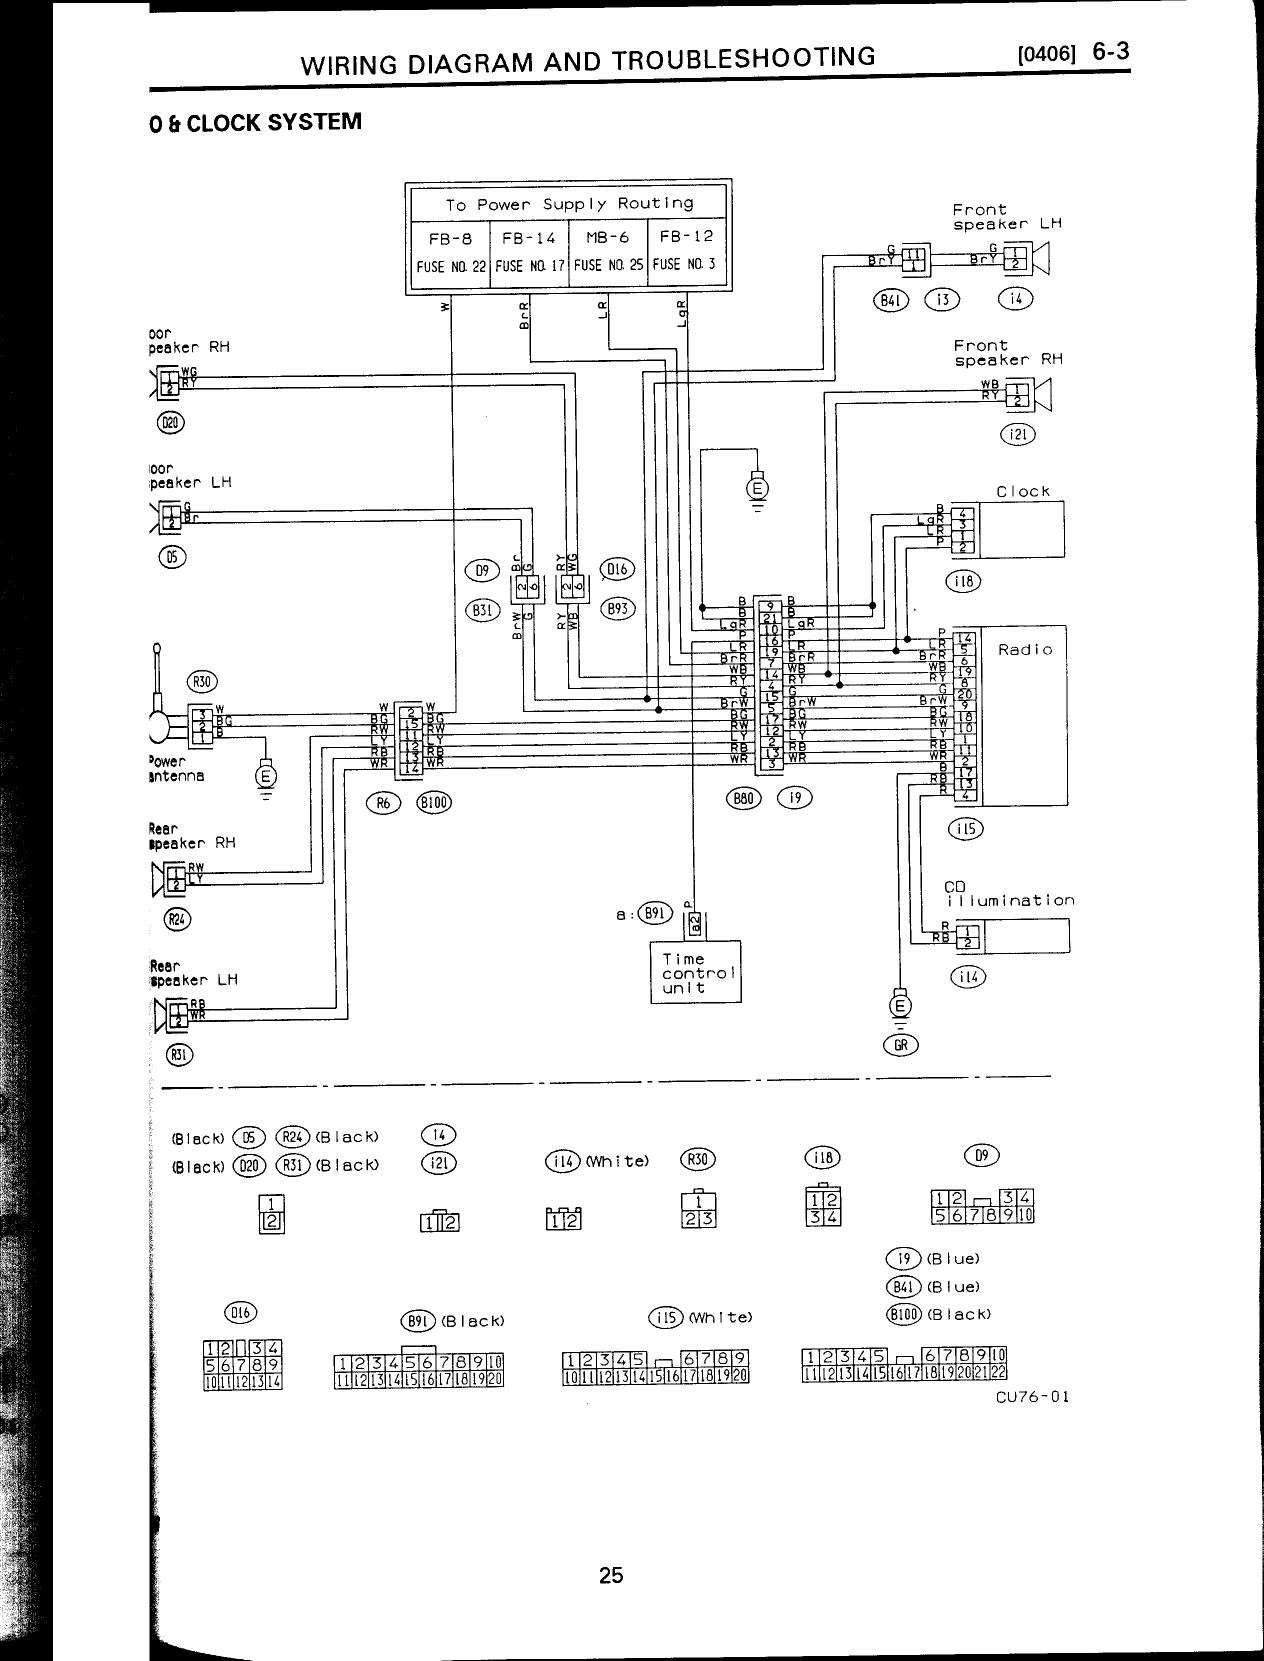 251 j SVXRadioWrg subaru svx receiver and speaker installation hu install 92 subaru legacy stereo wiring diagram at crackthecode.co